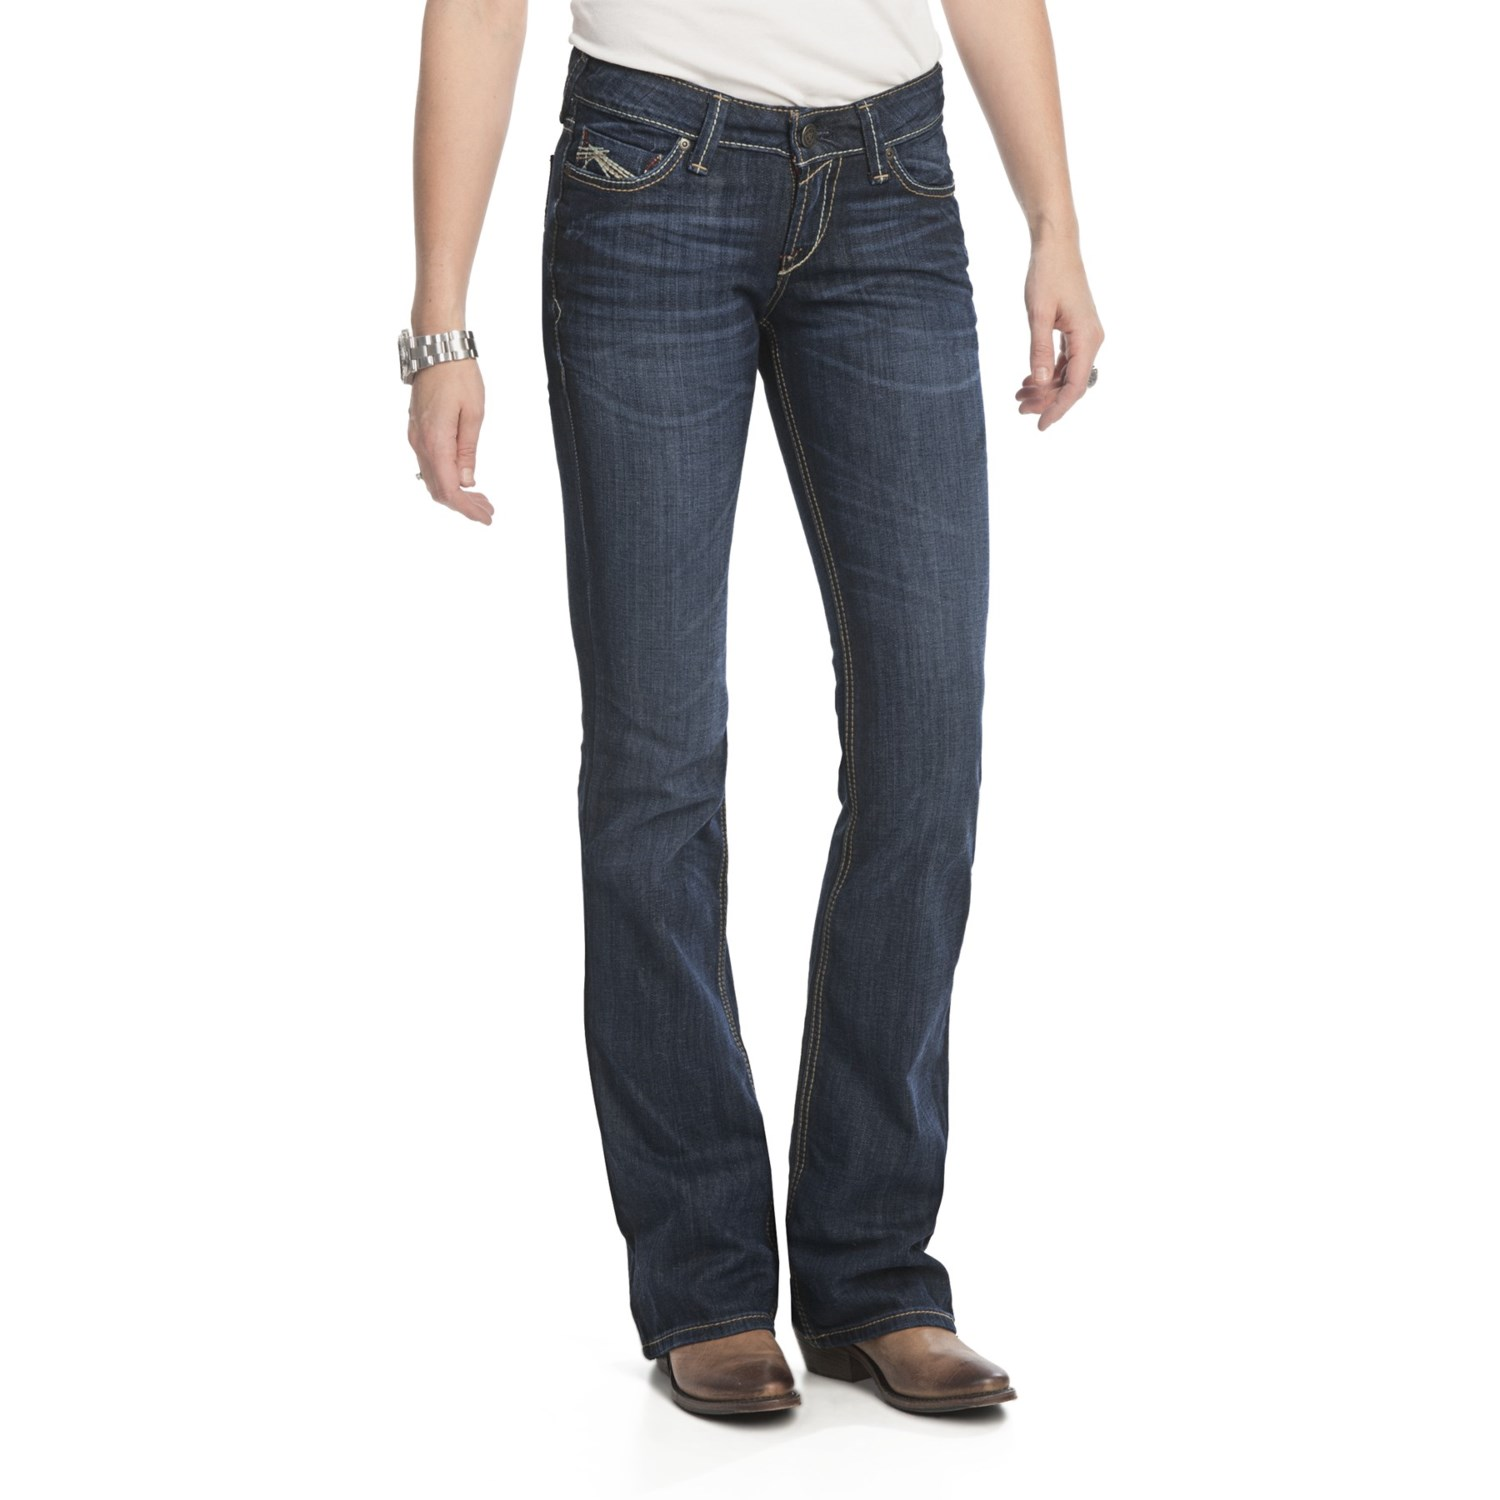 Ariat Ruby Stretch Jeans (For Women) 5324K - Save 40%